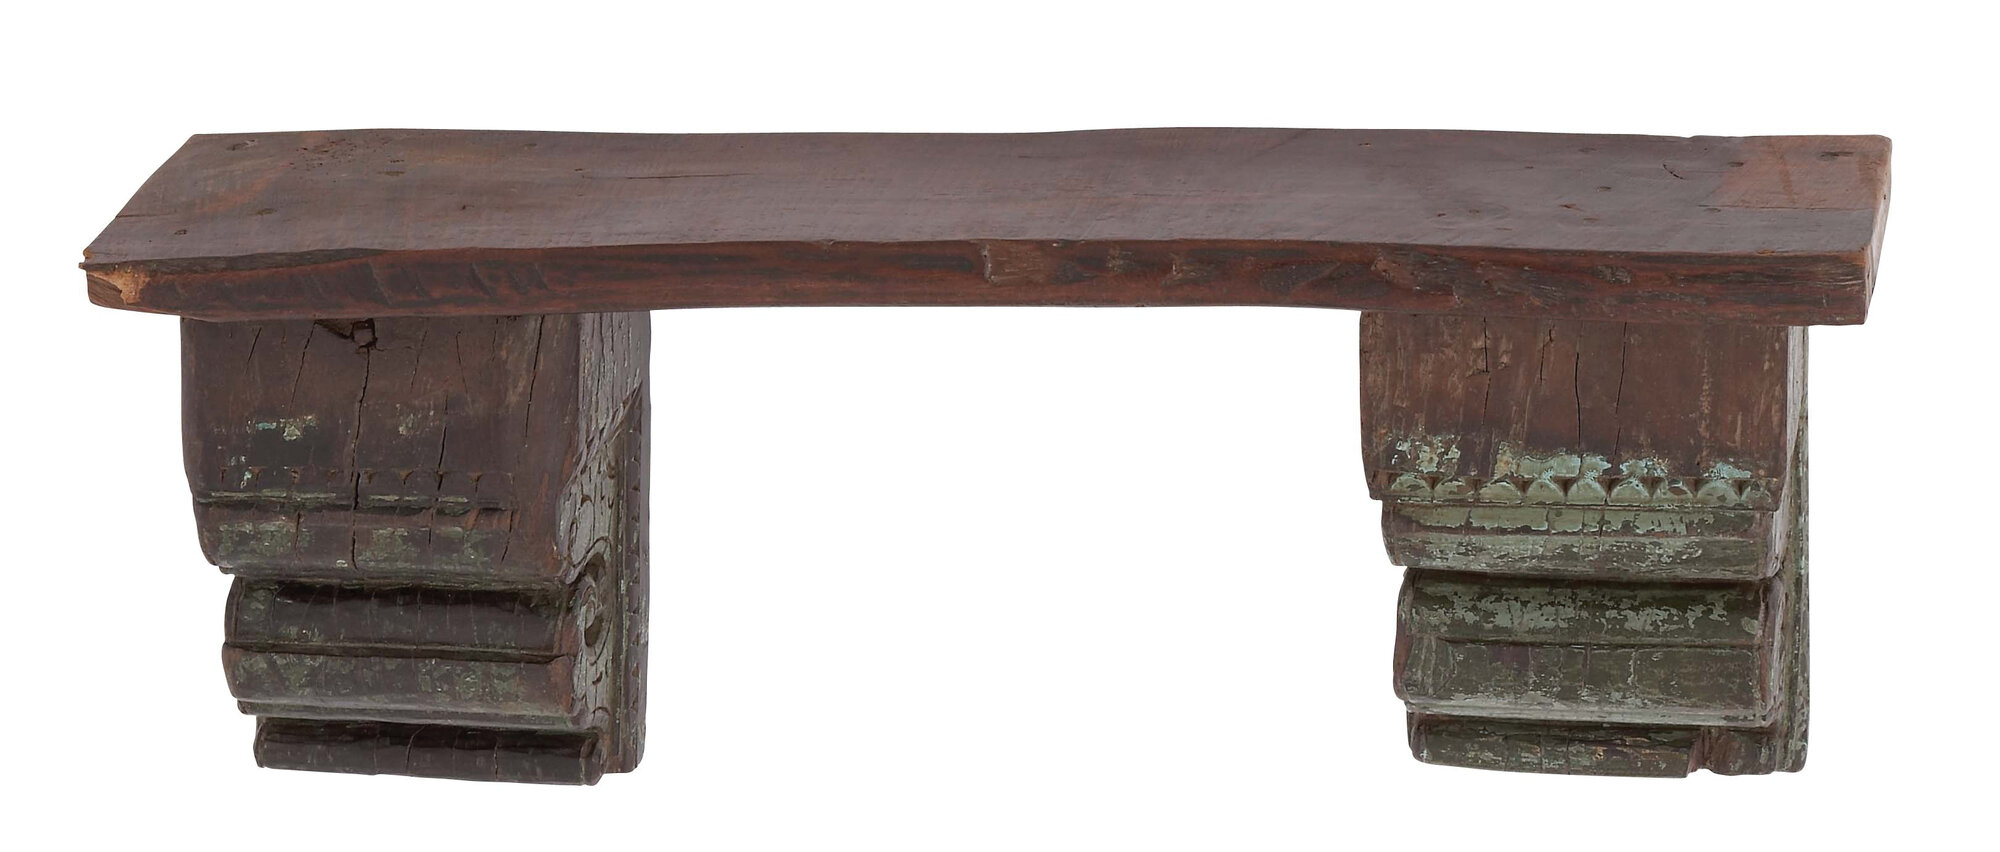 Woodland imports antique reclaimed wood wall shelf ebay for Shelves made from reclaimed wood